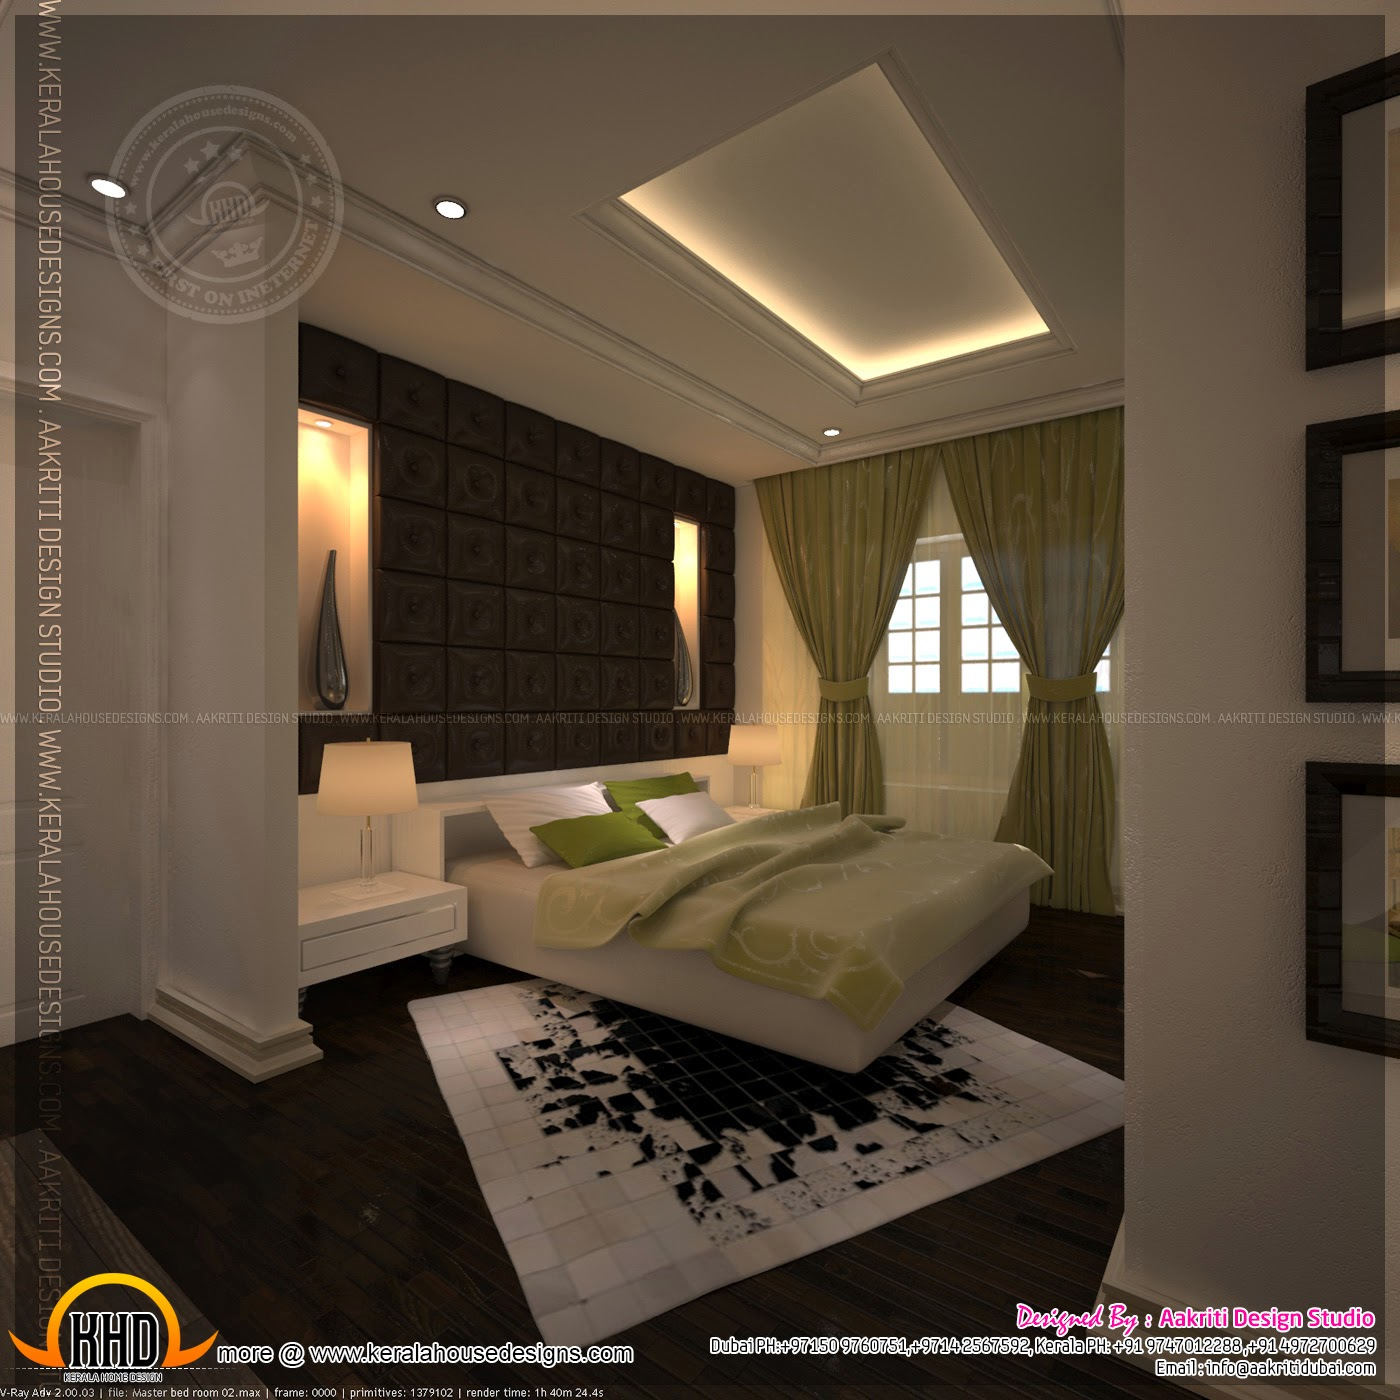 New Interior Design Bedroom: Master Bedroom And Bathroom Interior Design